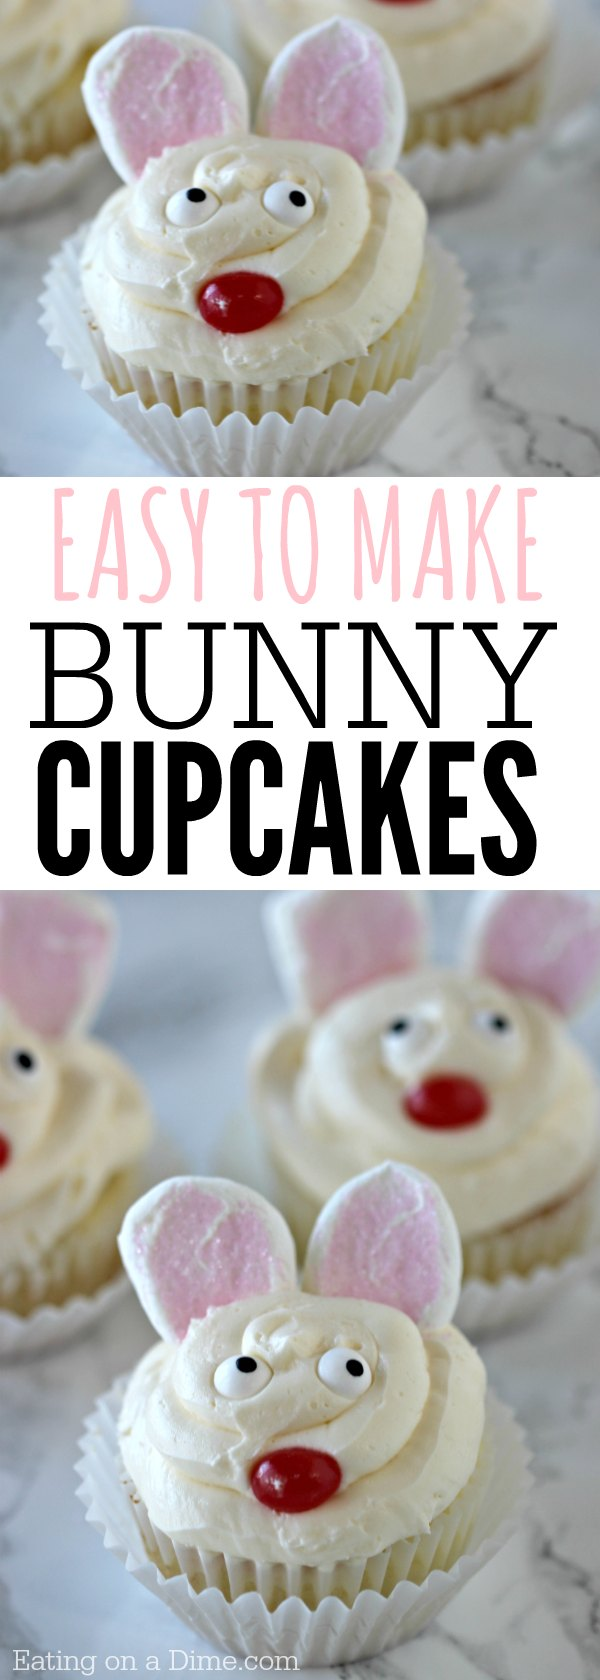 Looking For Easy Easter Cupcake Recipes? How To Make Bunny Cupcakes In  Minutes! These